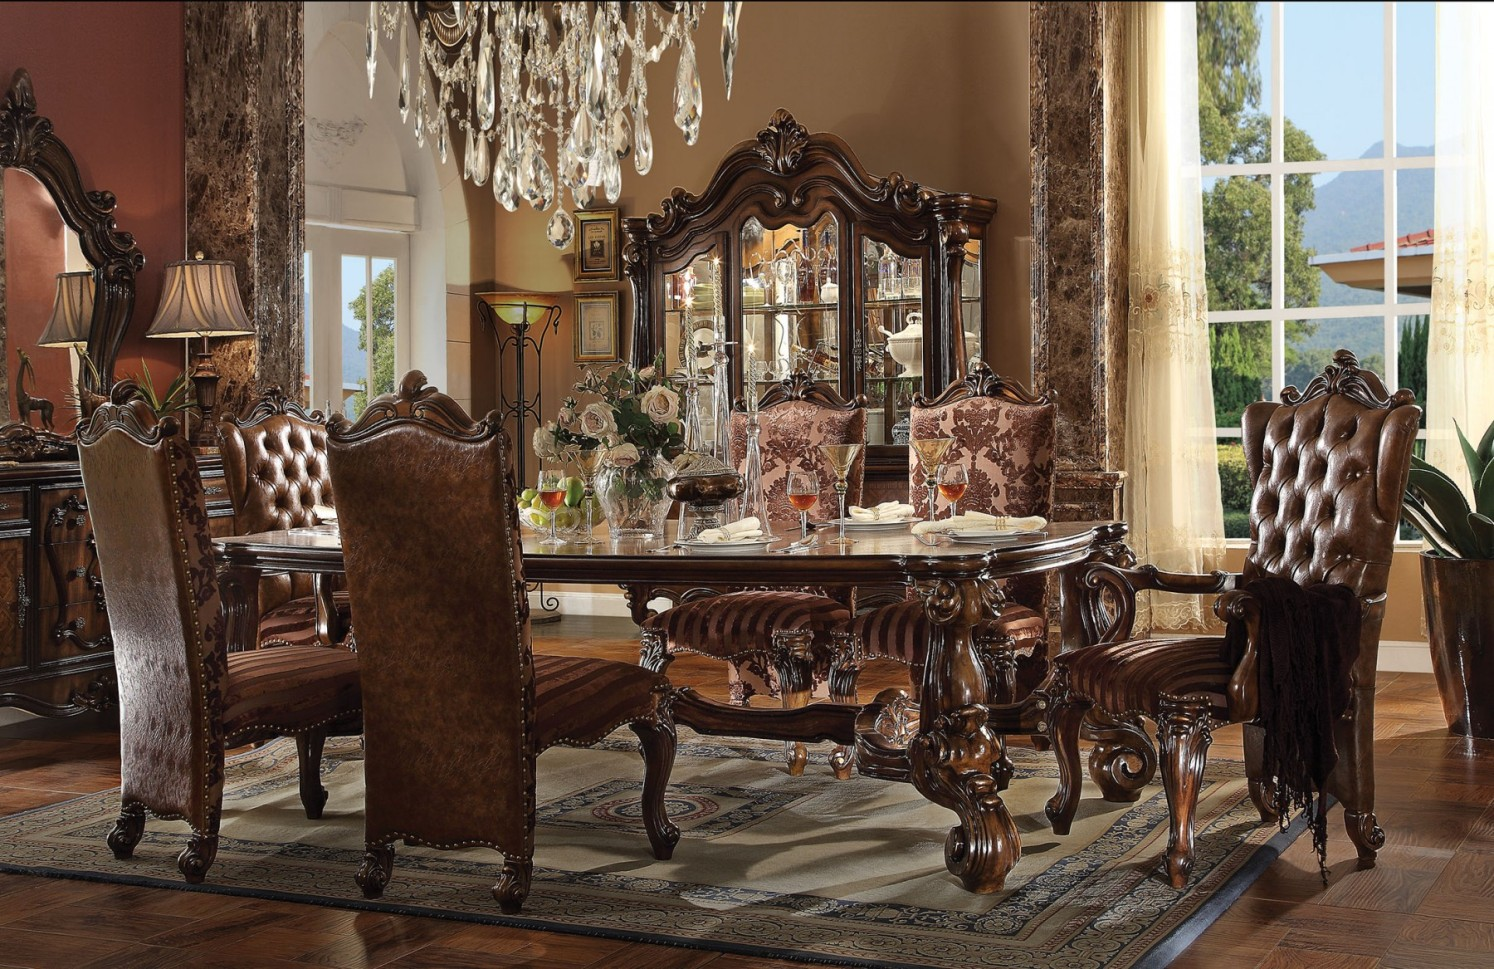 Formal dining room sets how elegance is made possible for Formal dining and living room ideas